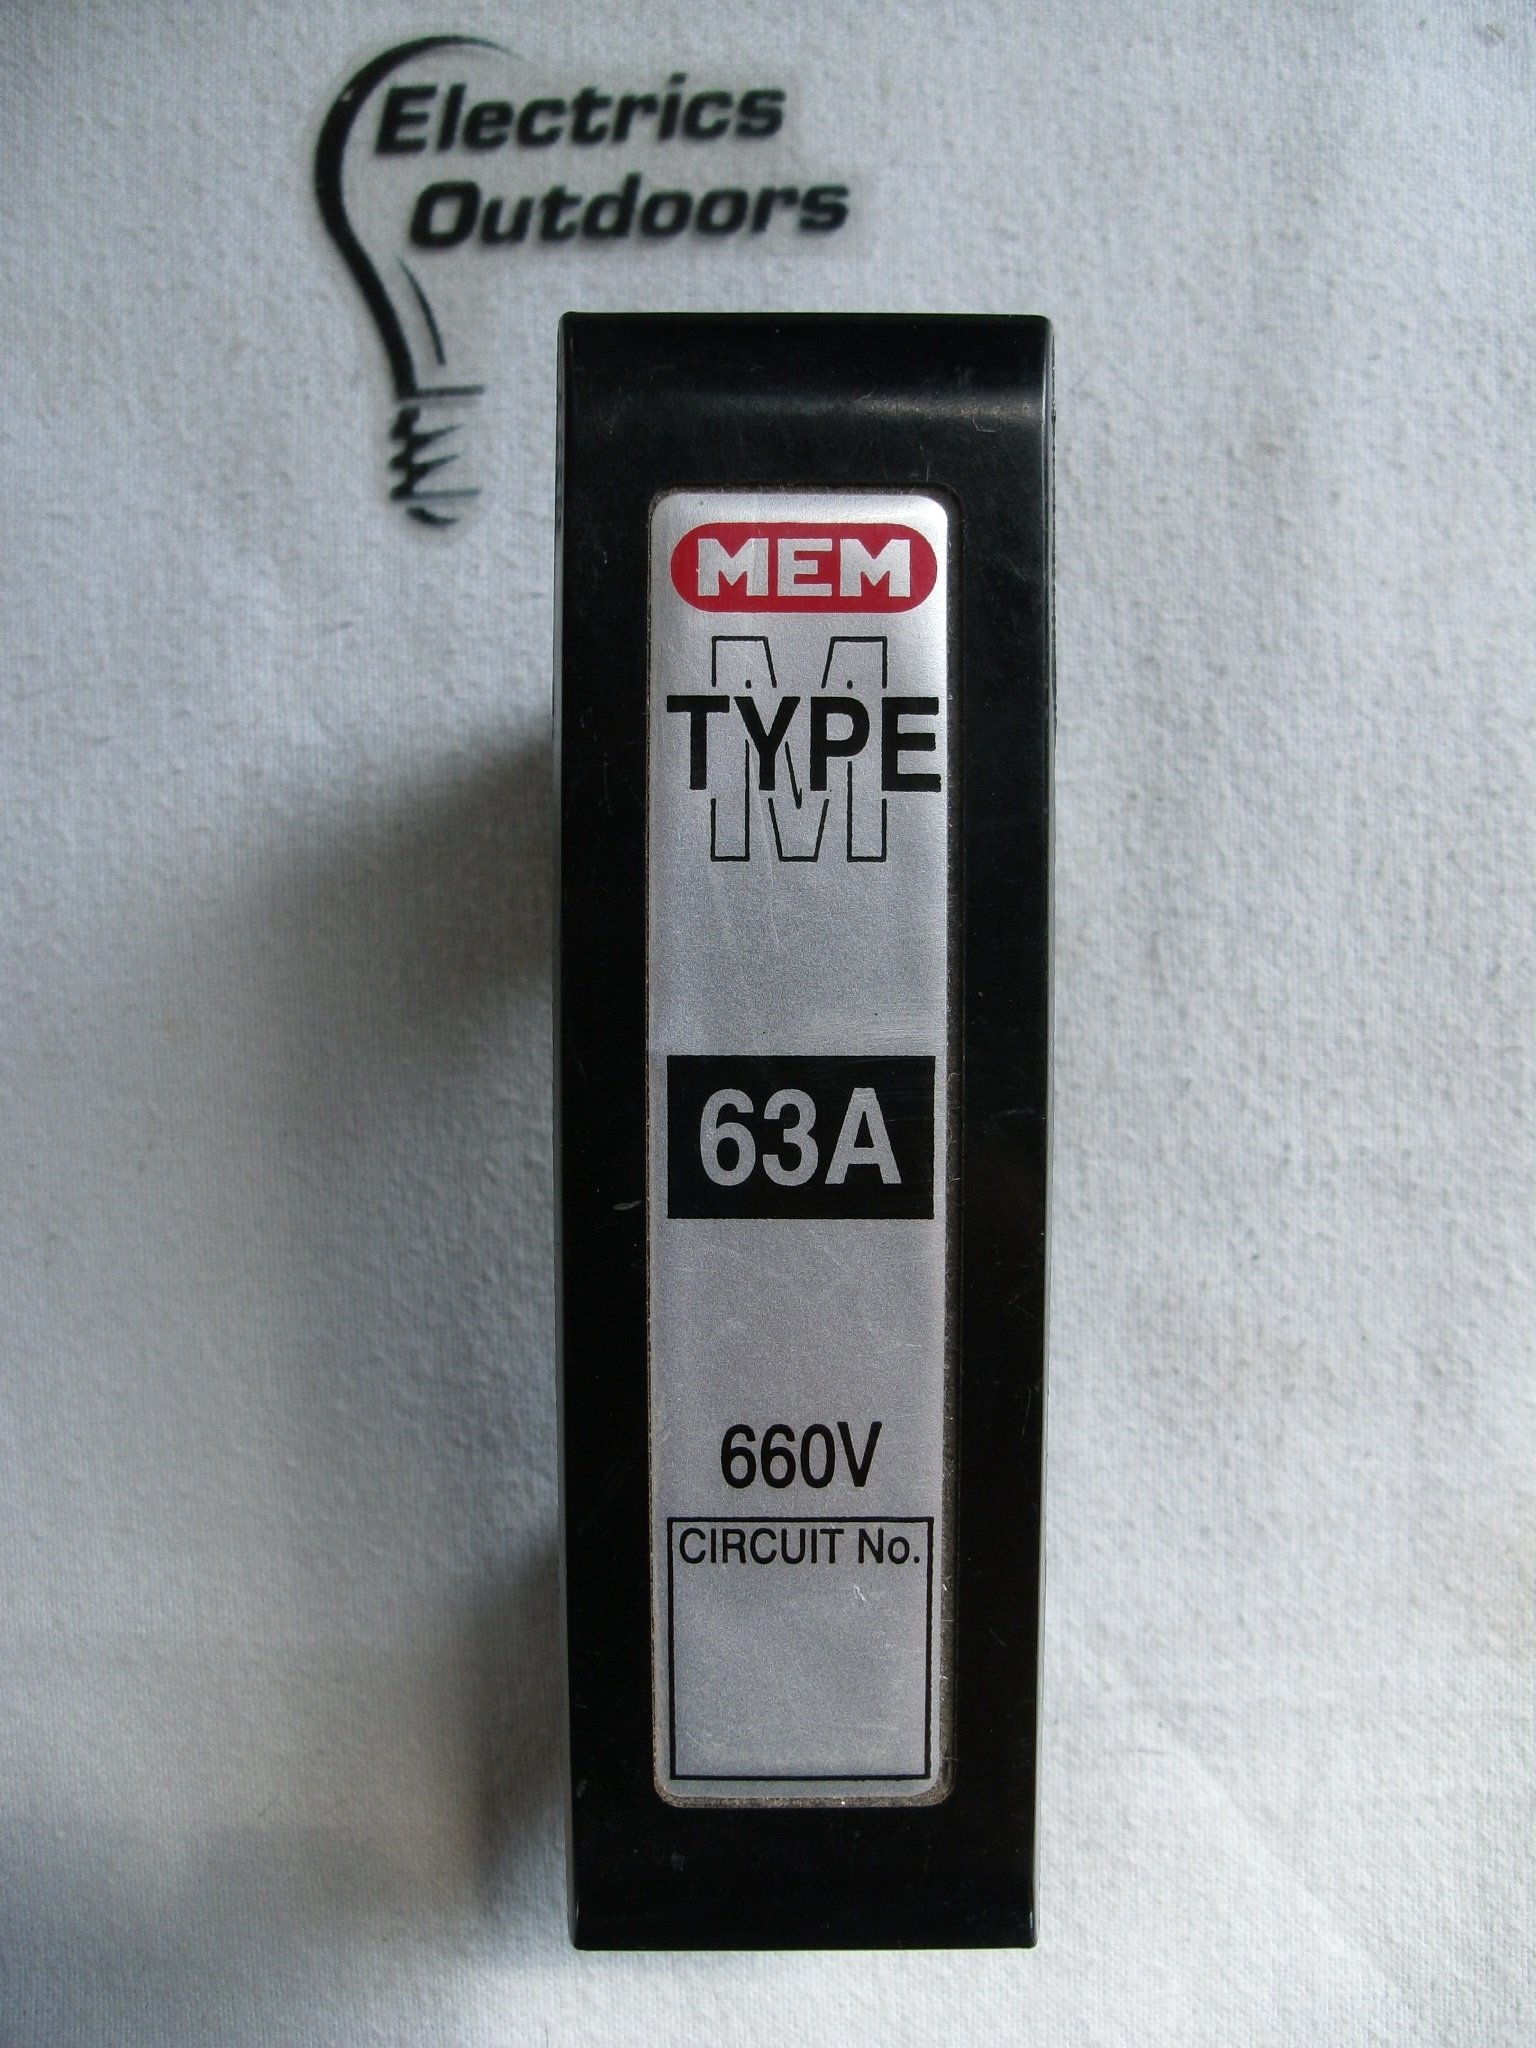 MEM 63 AMP FUSE HOLDER CARRIER 660V TYPE M BS 88 5071 Item Condition USED Sorry We Currently Have No Stock